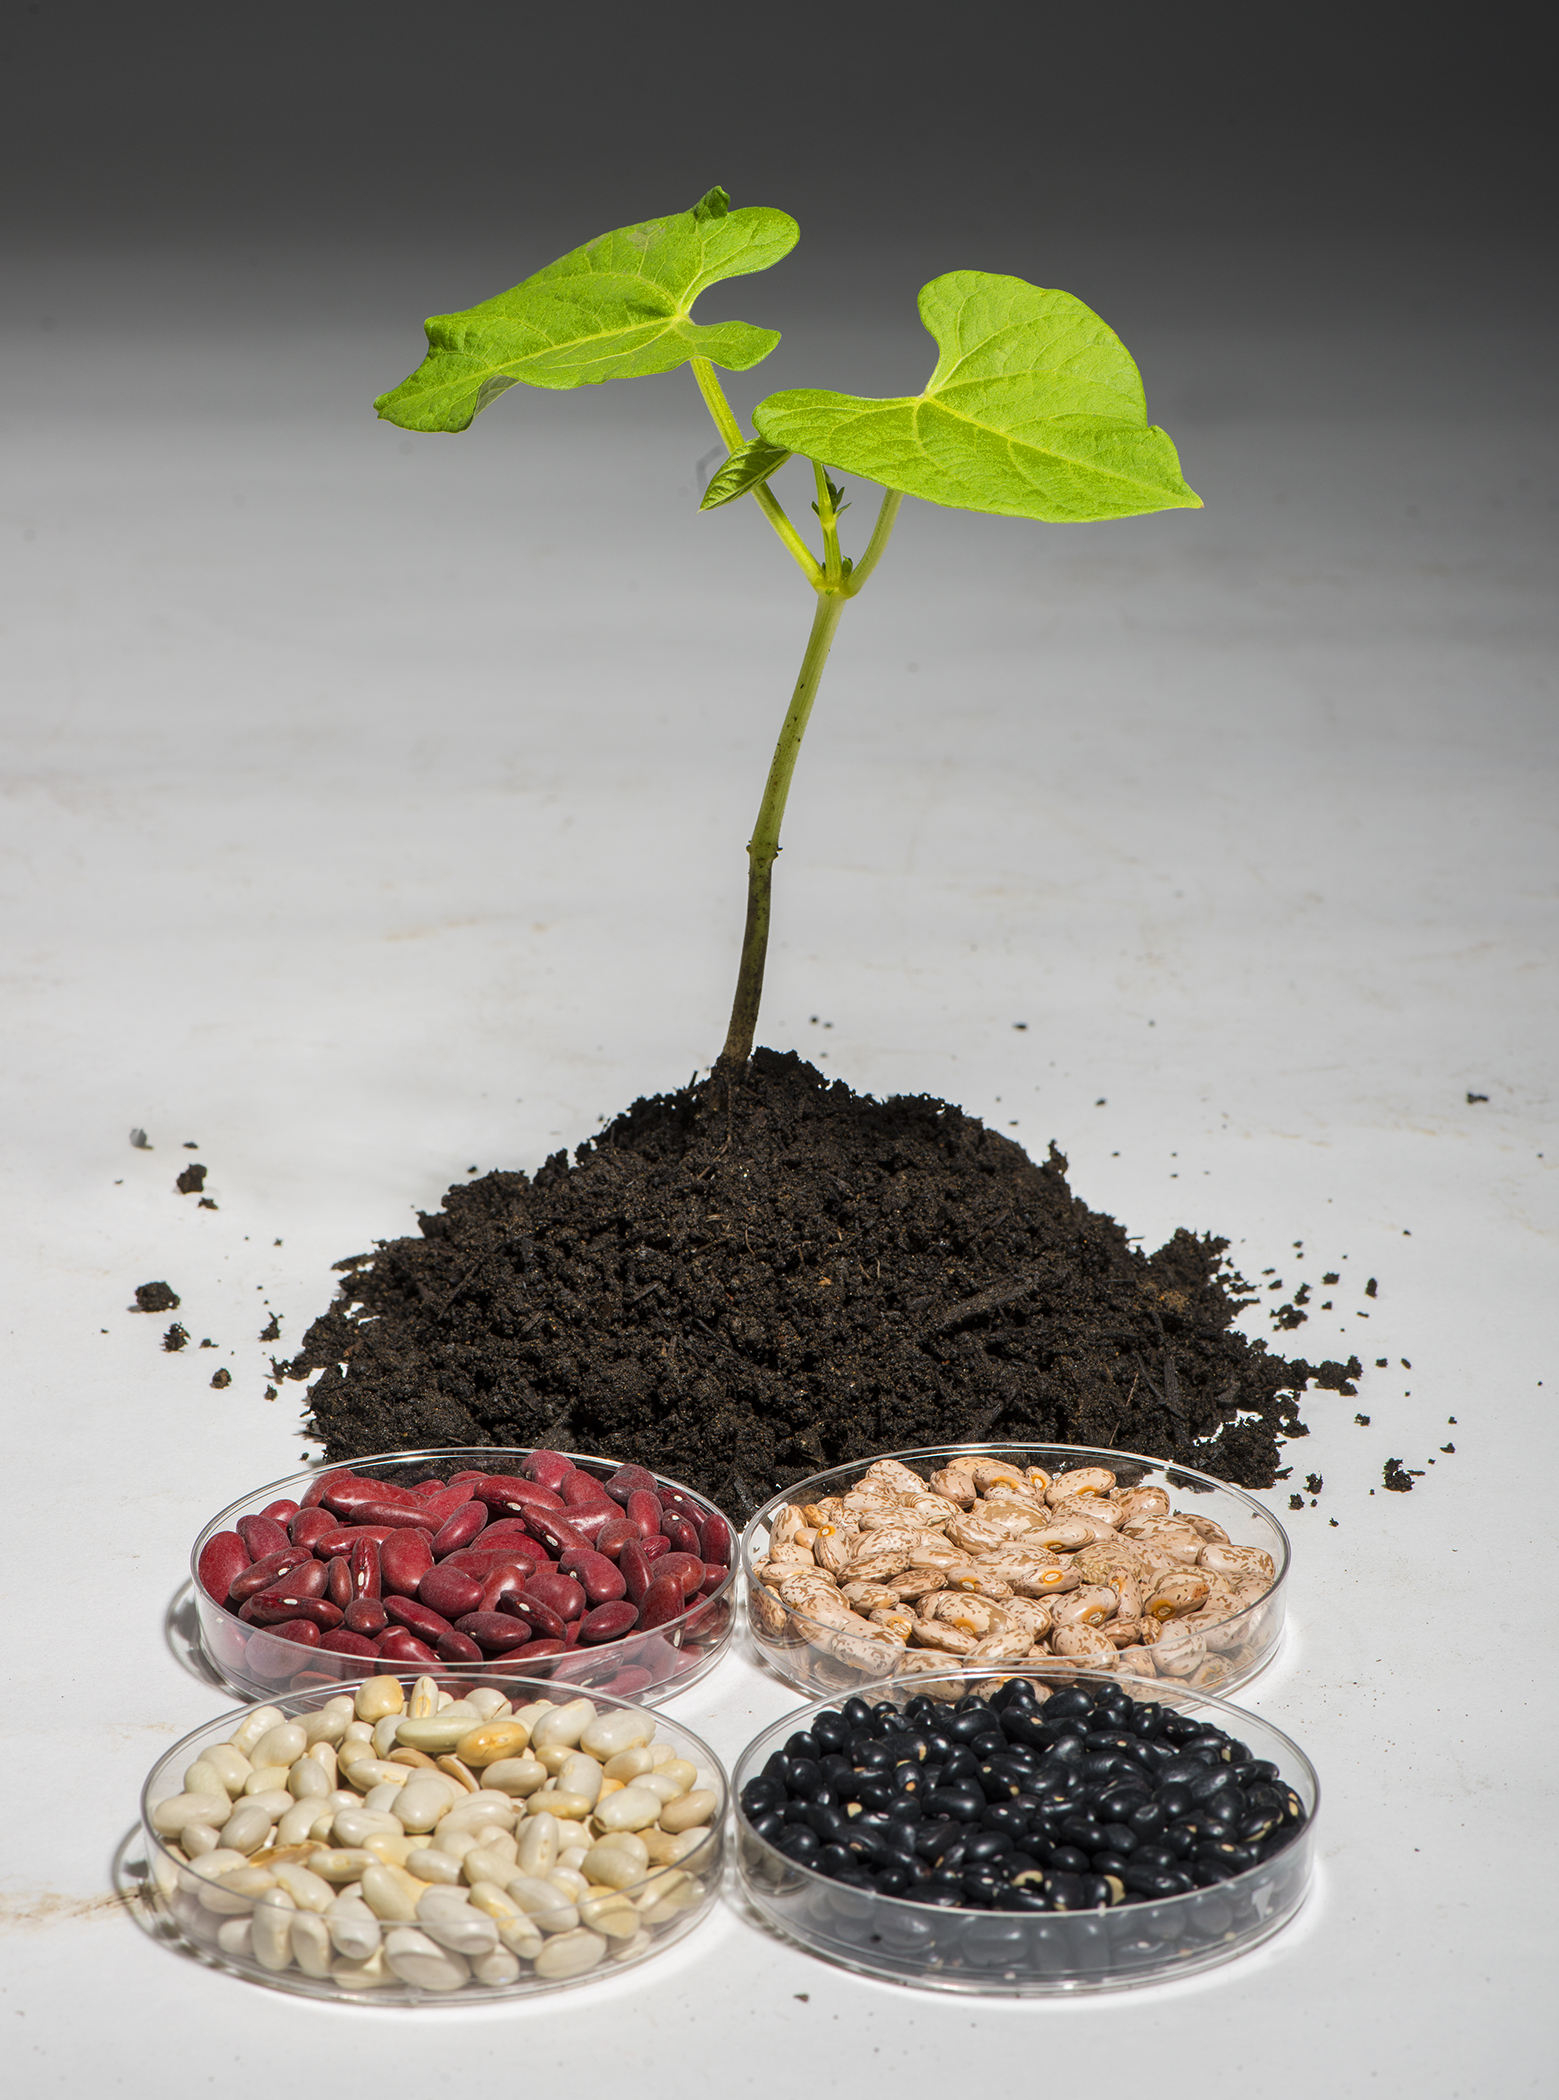 A common bean plant sits in the middle of a variety of dried beans.